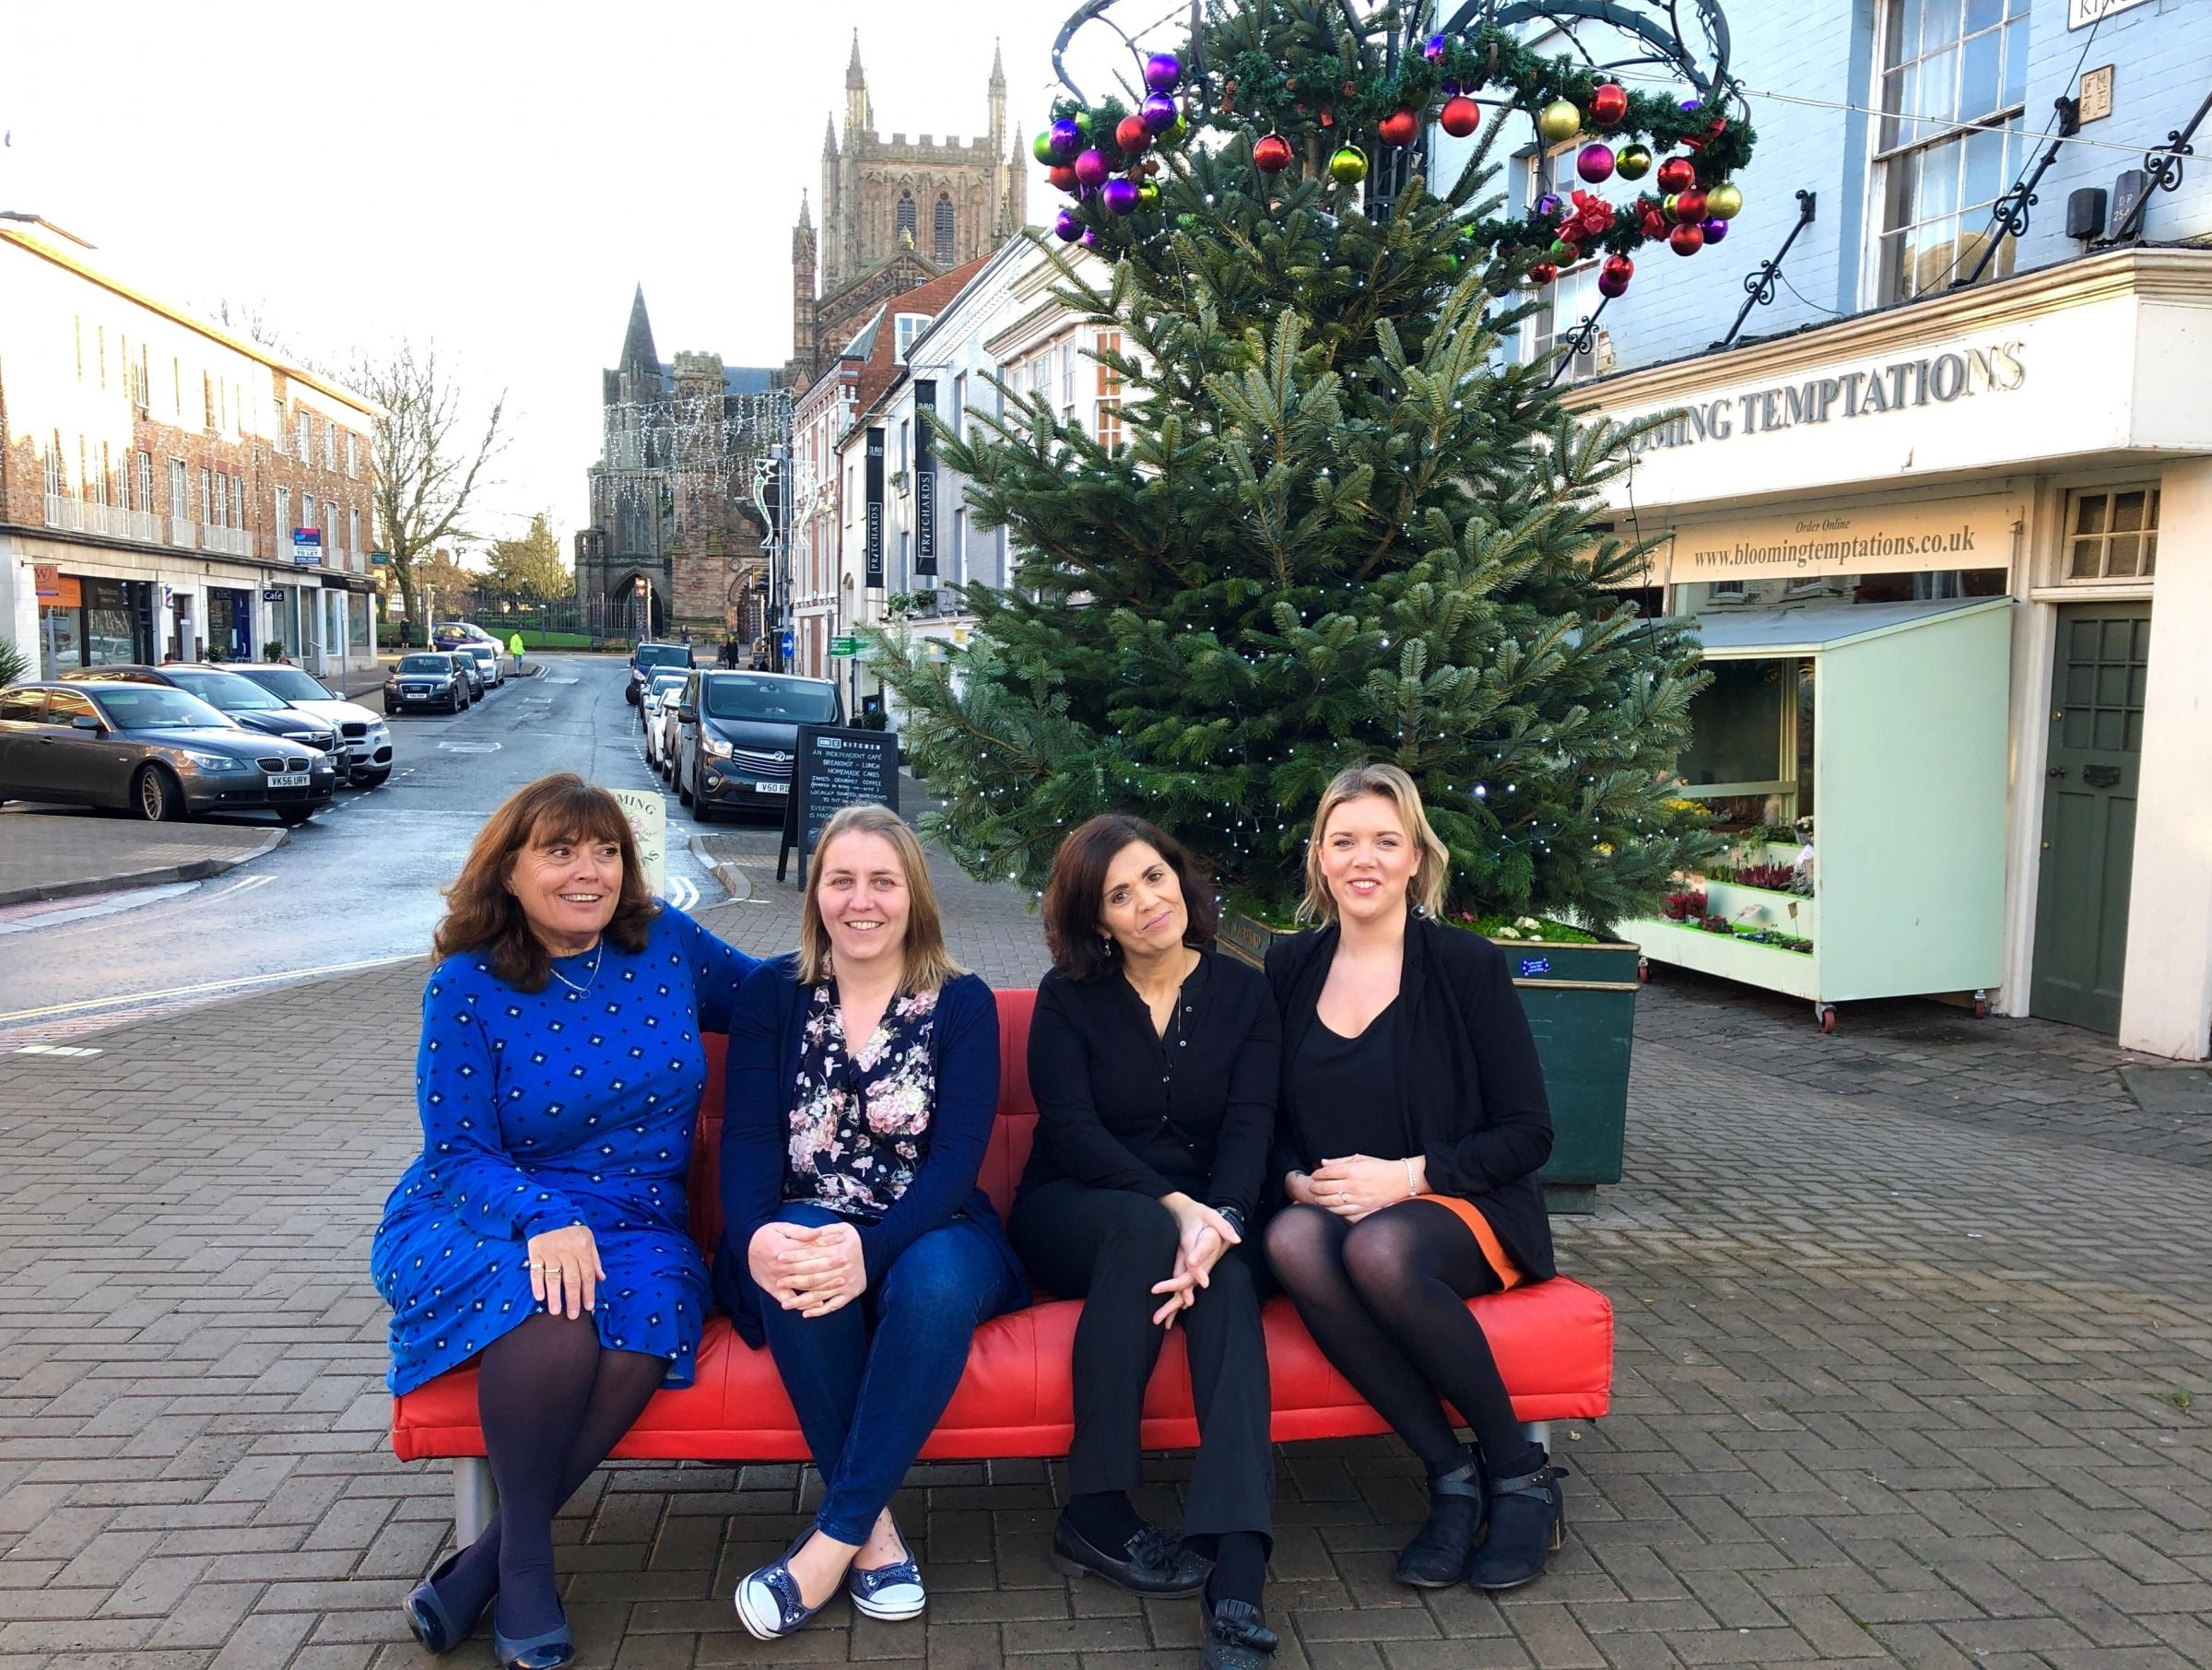 Pictured left to right: Lyn from Stook Hill and Walsh, Tanya from JJ and Little Dots and Charlotte and Leandra from Northwood Hereford Estate and Letting Agents